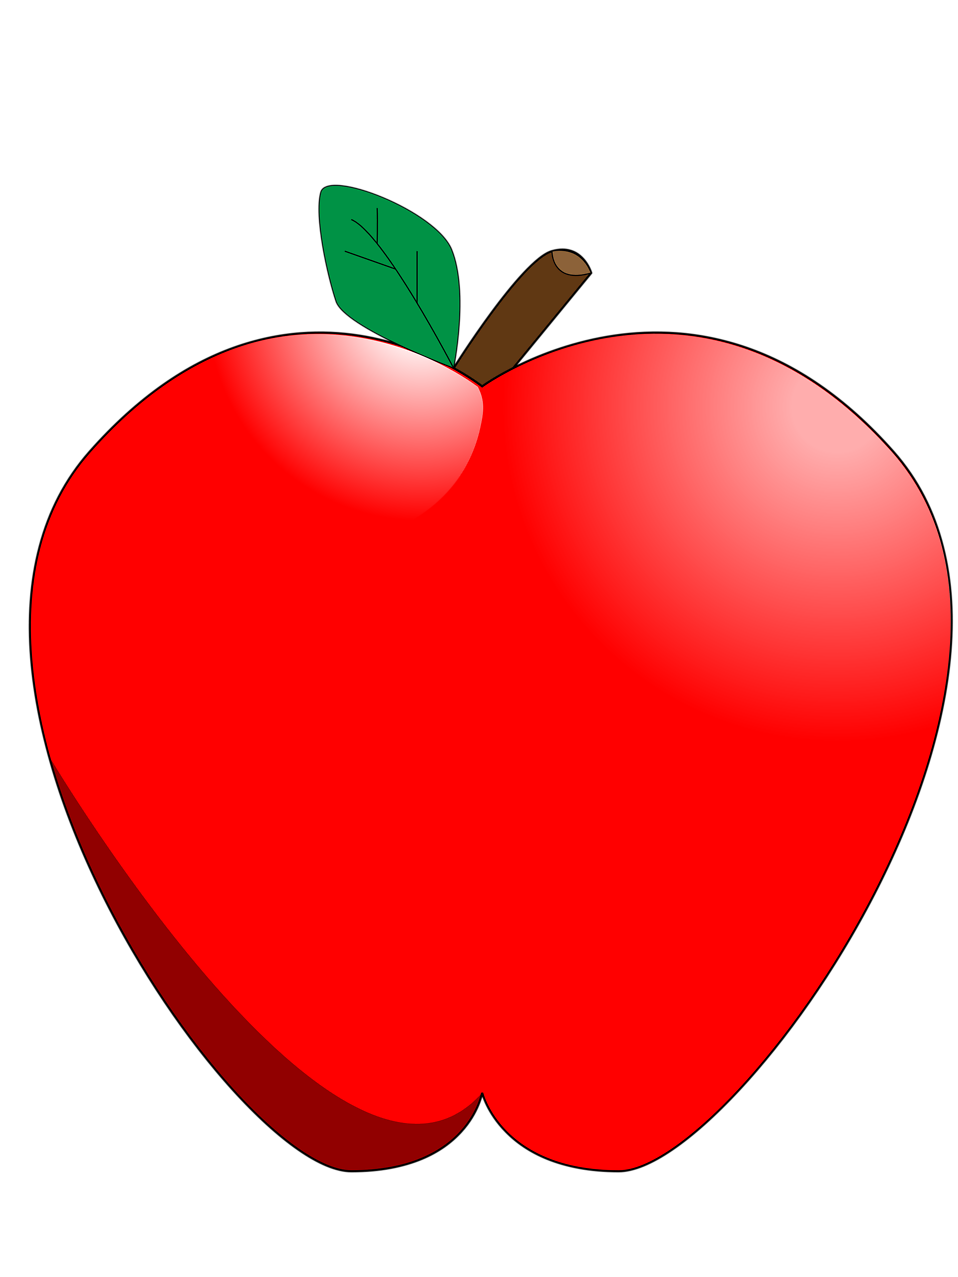 Red Apple Clip Art No Background Illustration of a red apple.